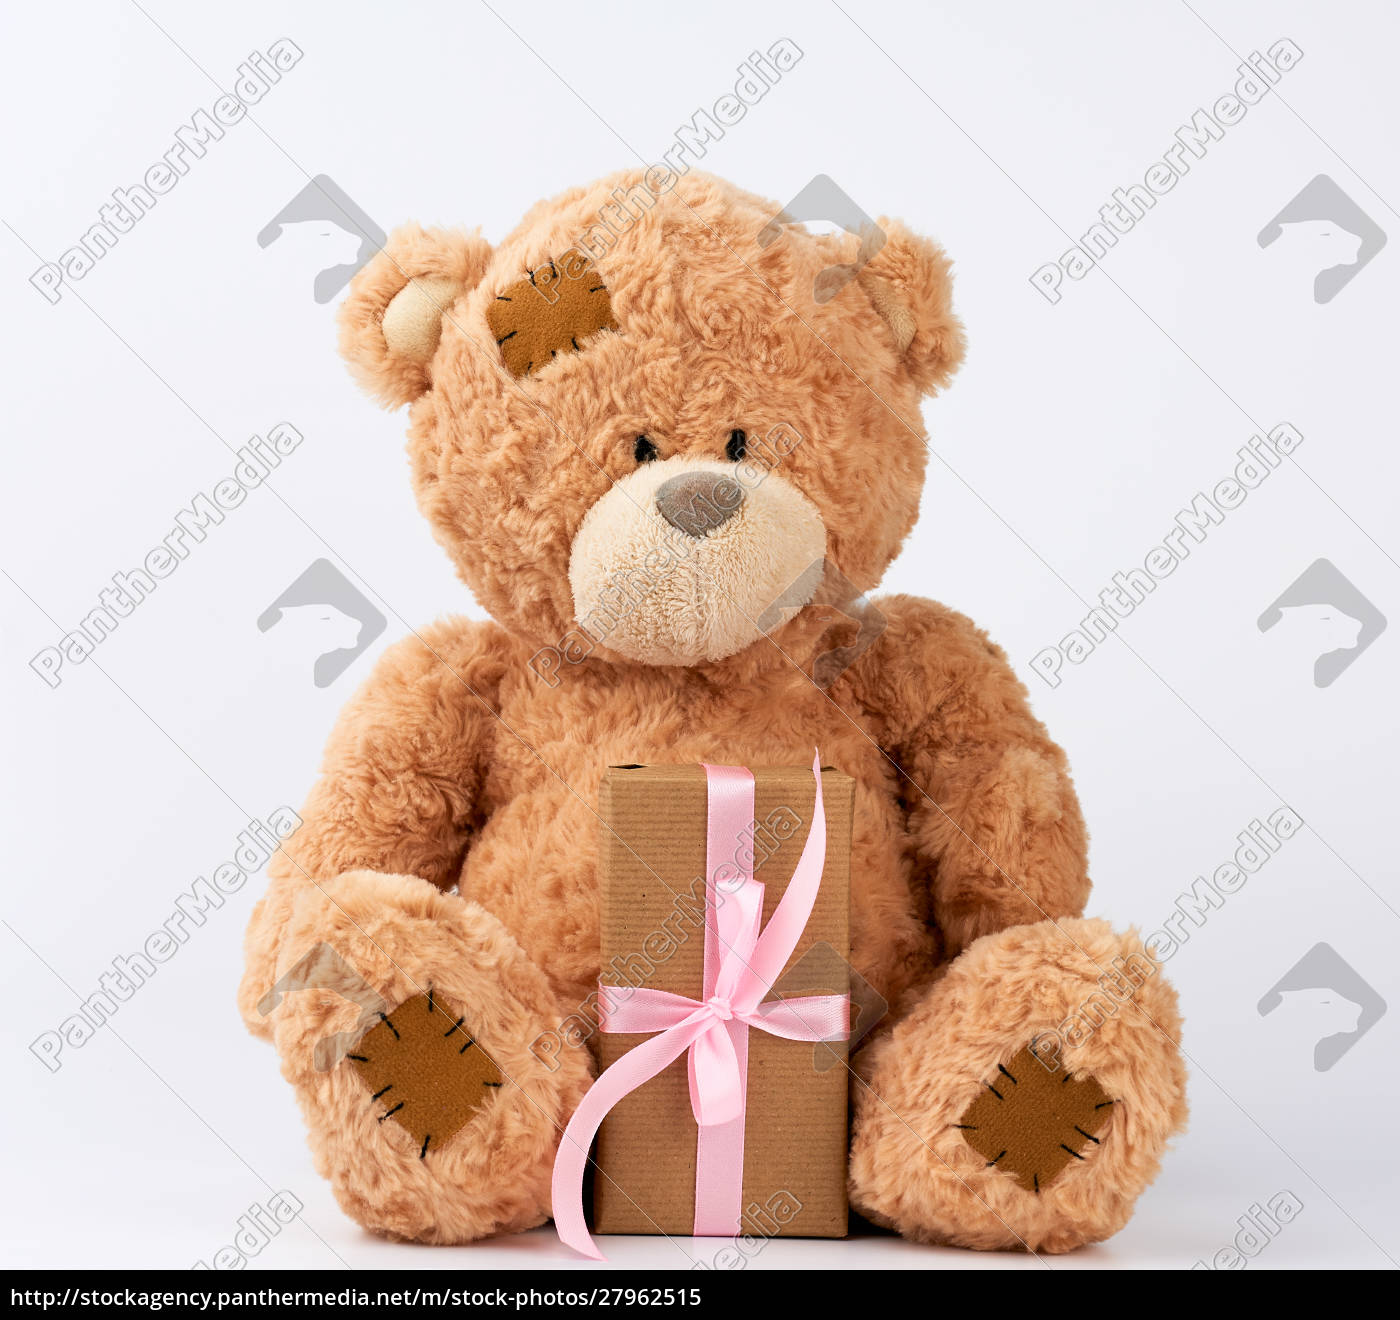 big, beige, teddy, bear, with, patches - 27962515